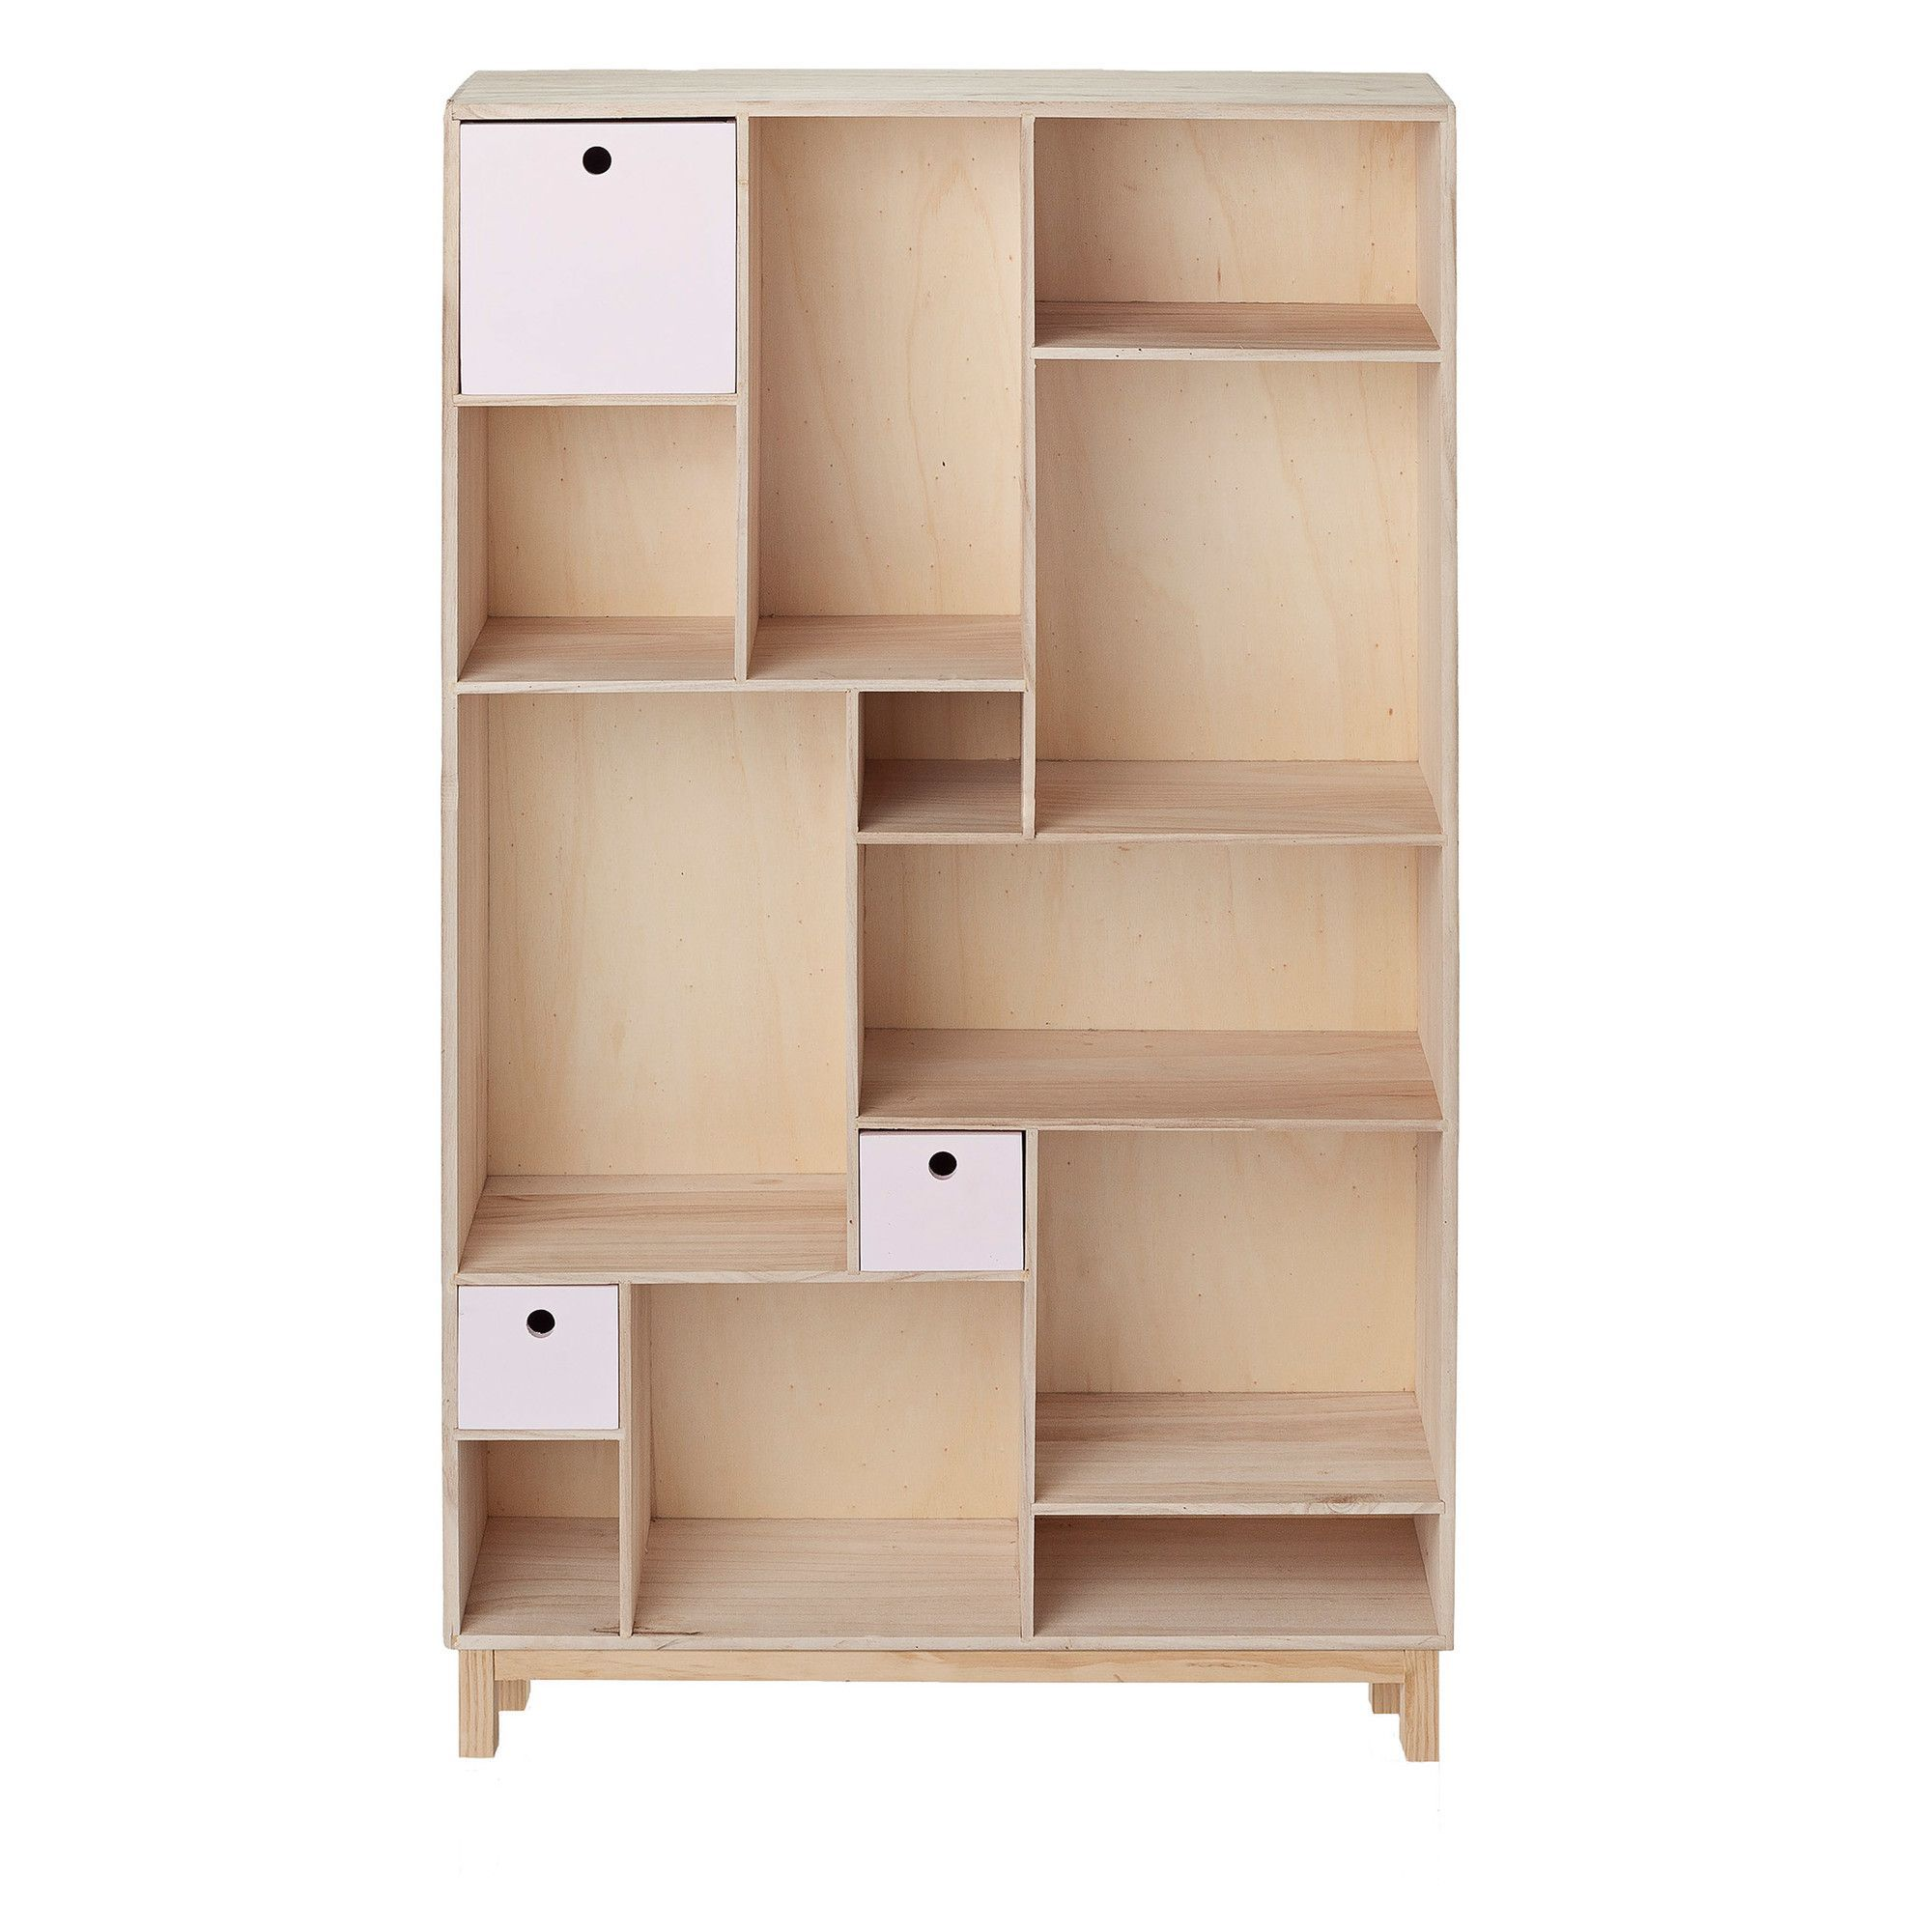 Fresh Wood Storage Cabinets with Doors and Shelves